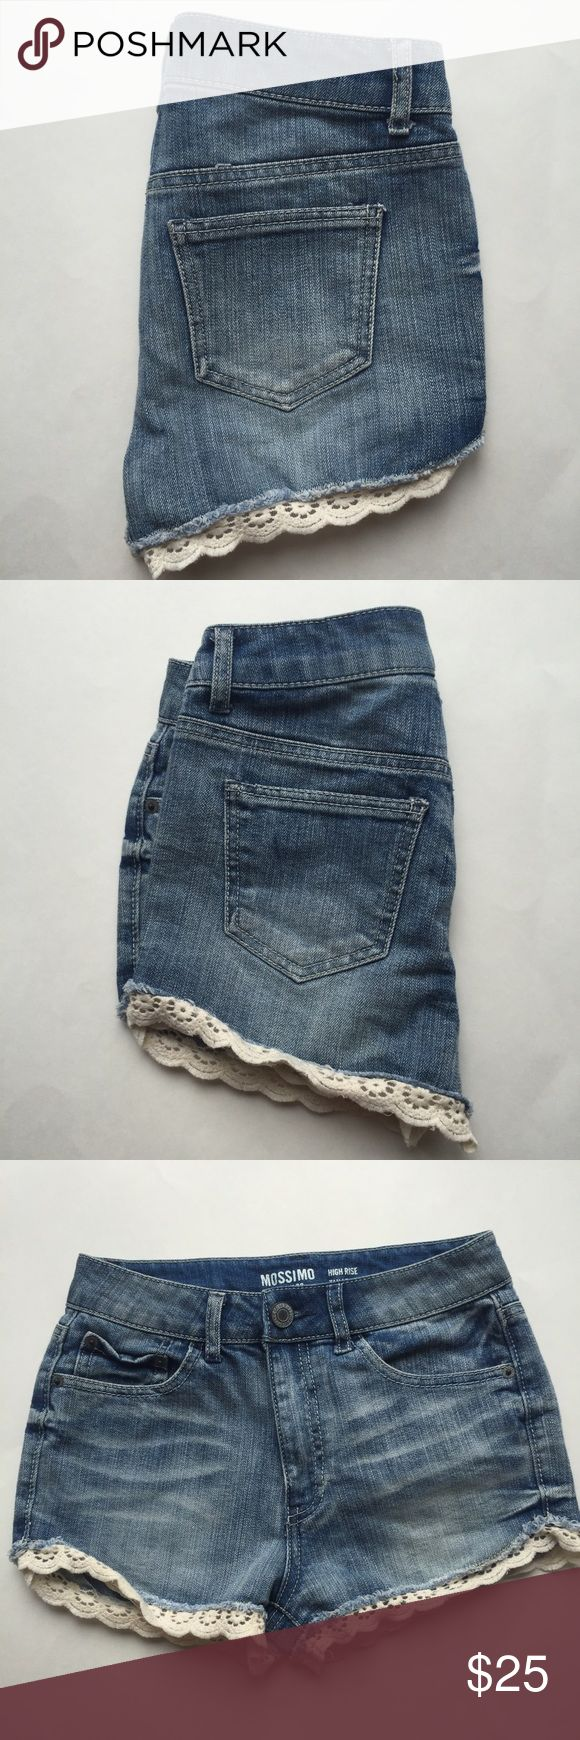 High Rise Denim Shorts w/lace Size 3 Only worn one time, in like new condition. Size juniors 3 with the high rise style and lace peaking out from under the shorts. These shorts are so cute and I would definitely keep if they fit me! Open to reasonable offers, all sales final. Mossimo Supply Co Shorts Jean Shorts